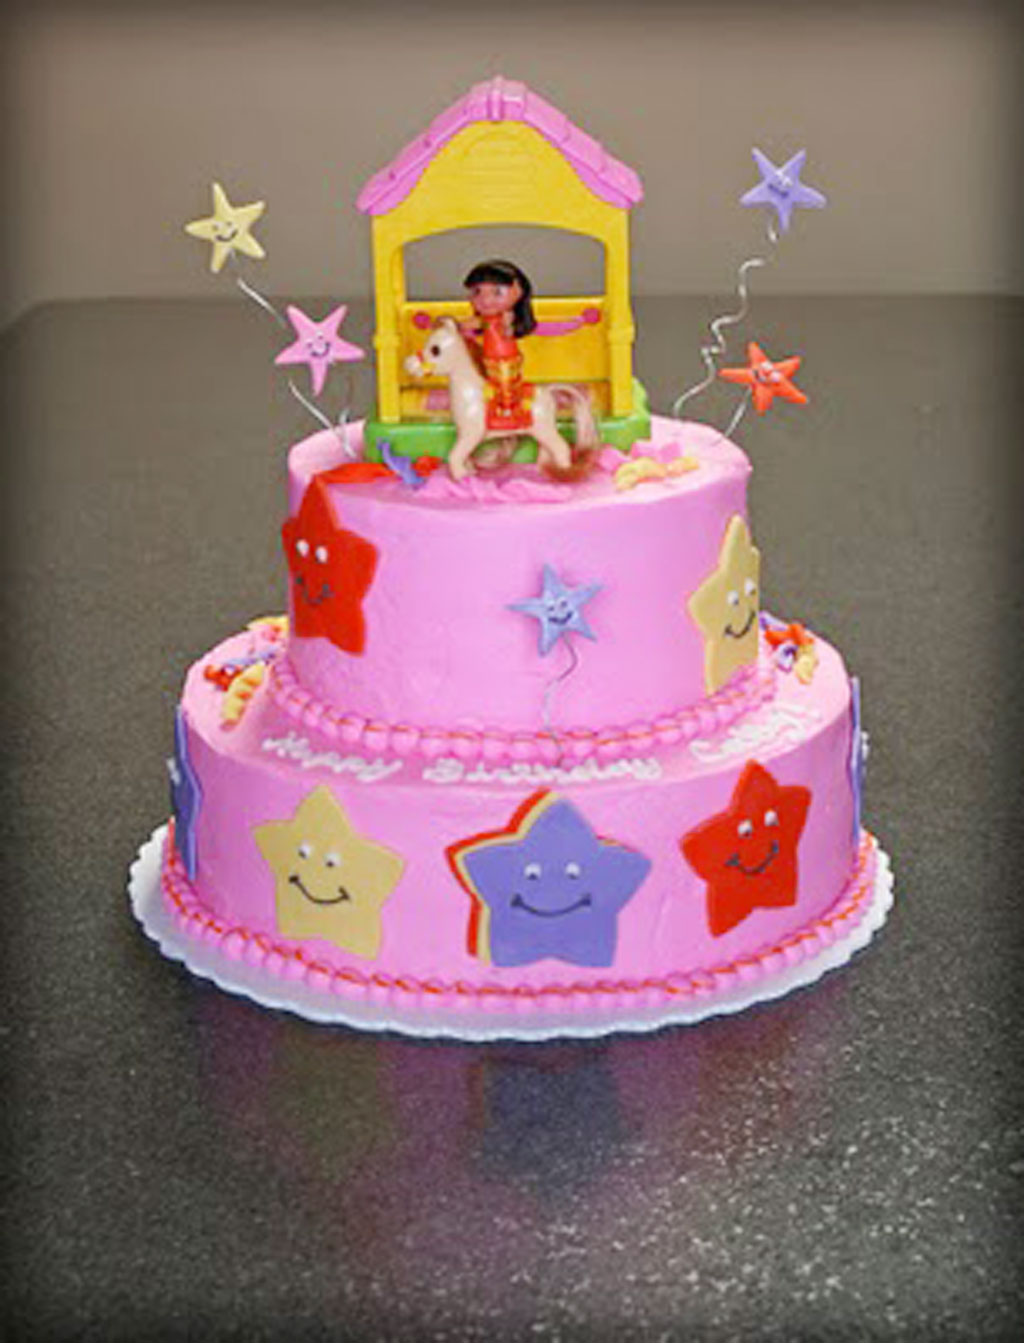 Dora The Explorer Birthday Cake Design Birthday Cake Cake Ideas by